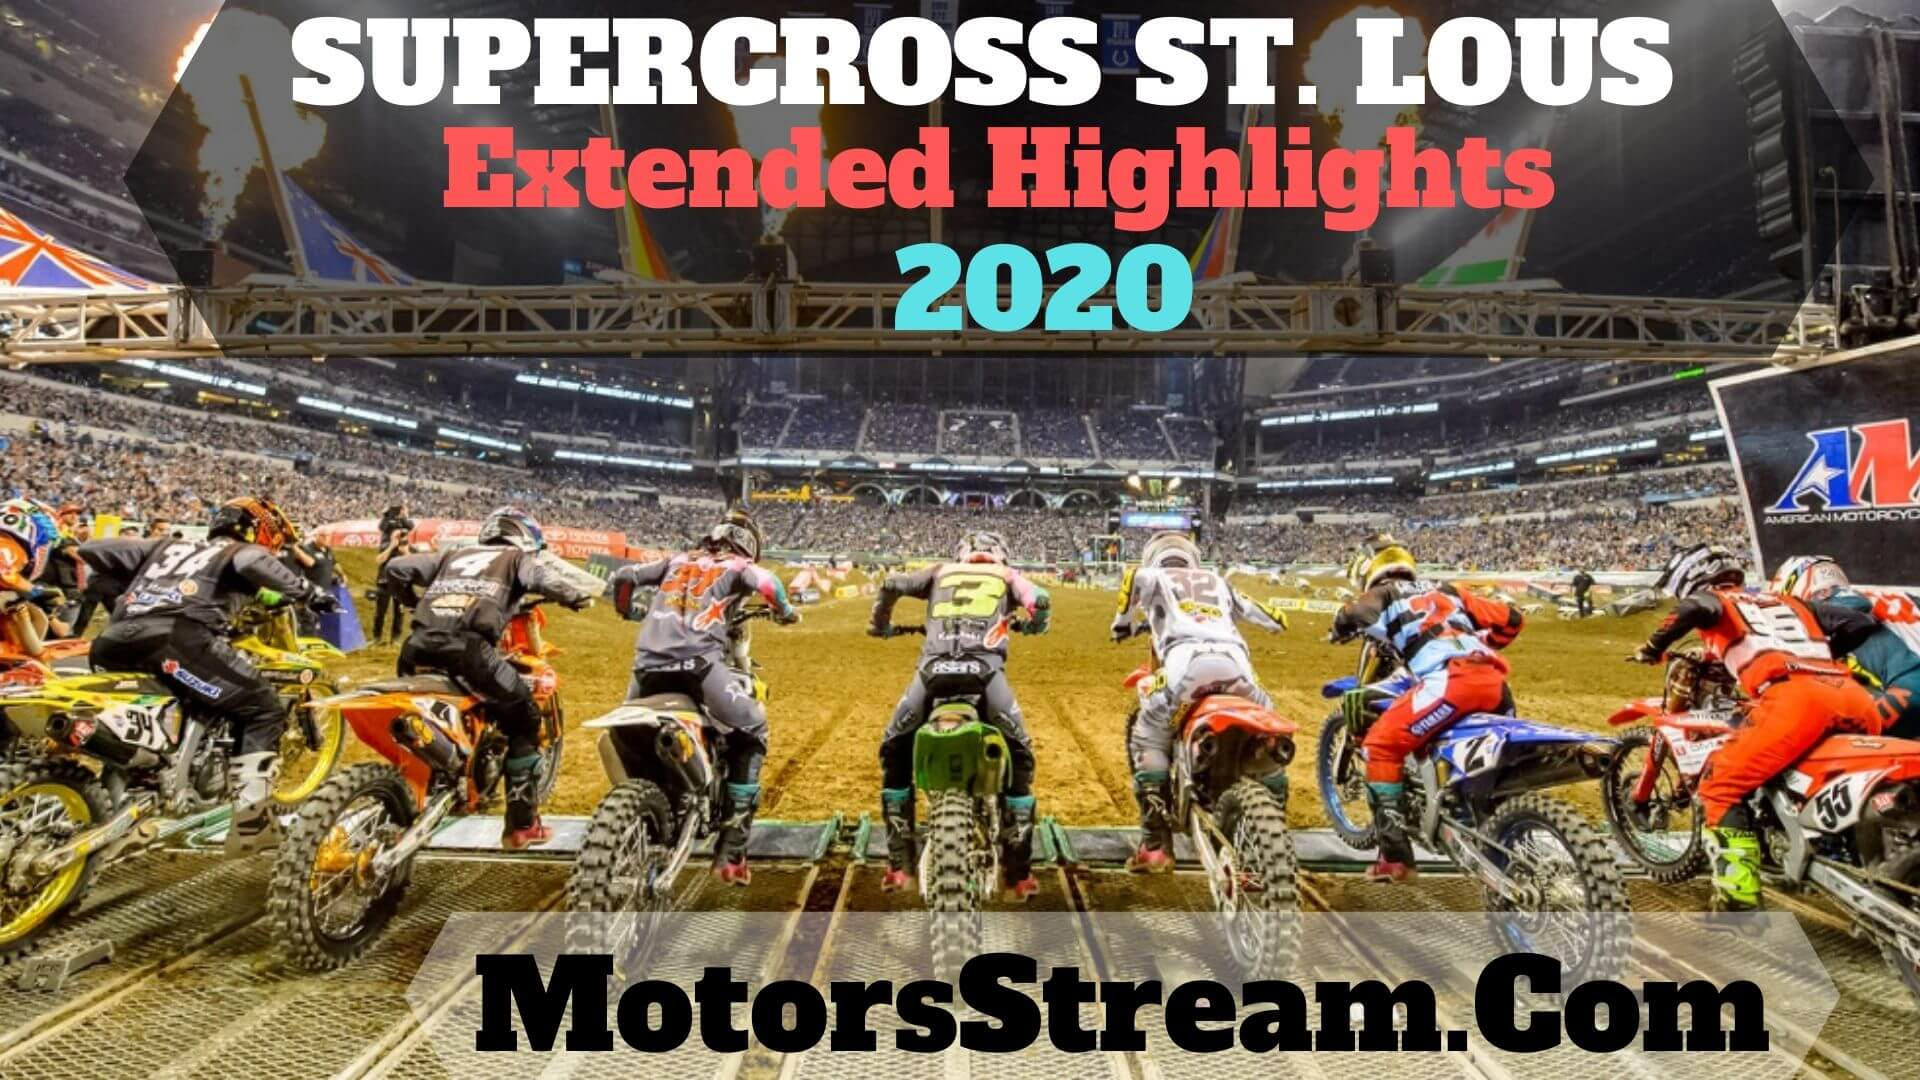 St Louis Supercross 2020 Extended Highlights